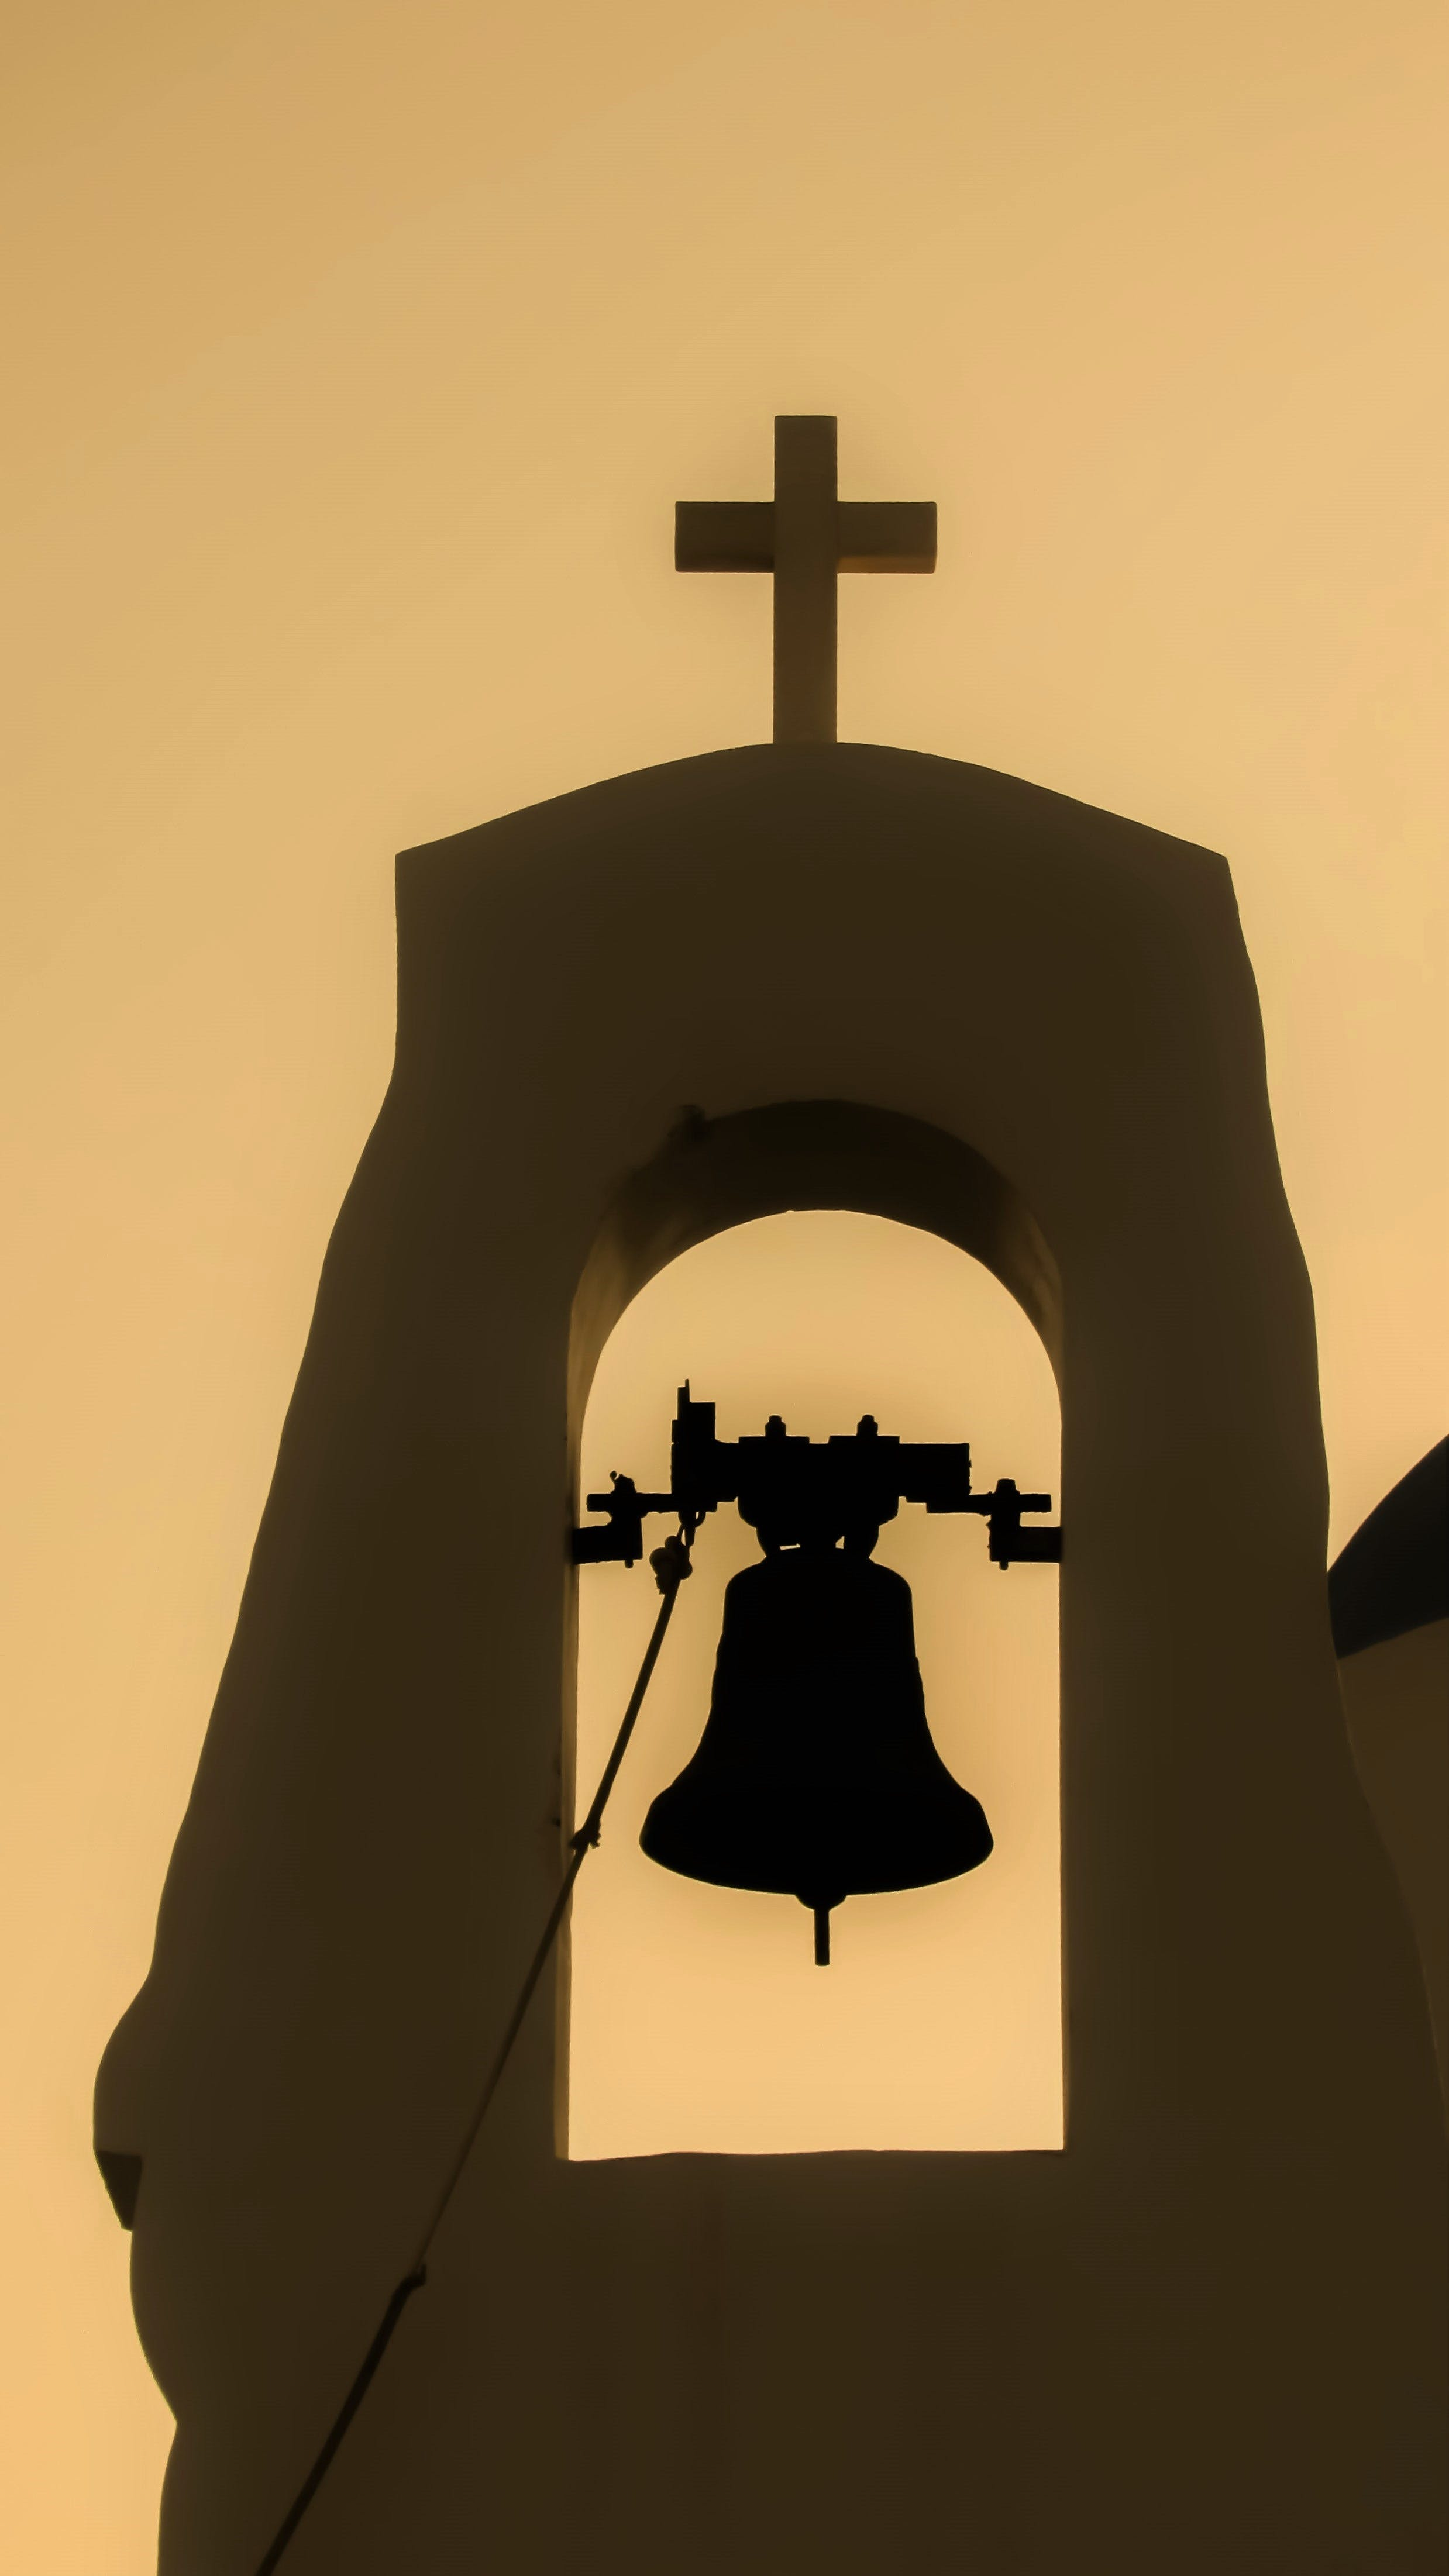 Silhouette Photography of Church With Bell